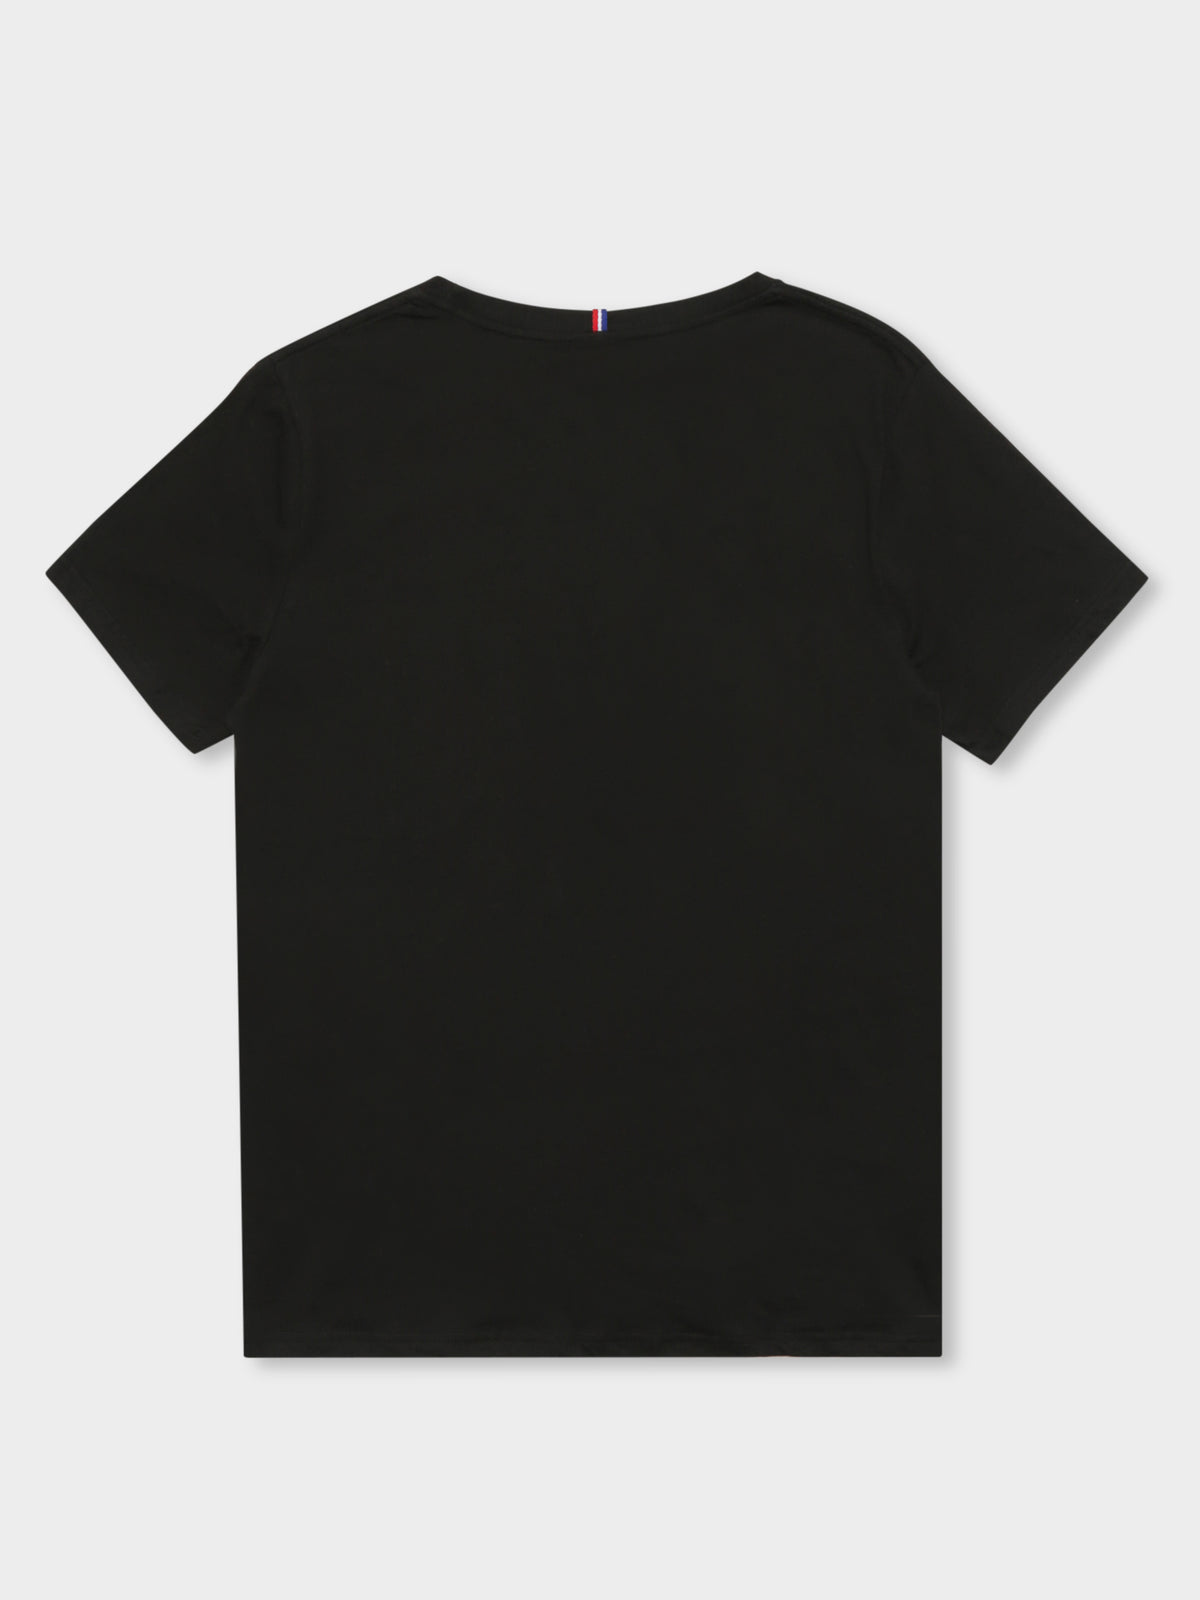 Roissy T-Shirt in Black